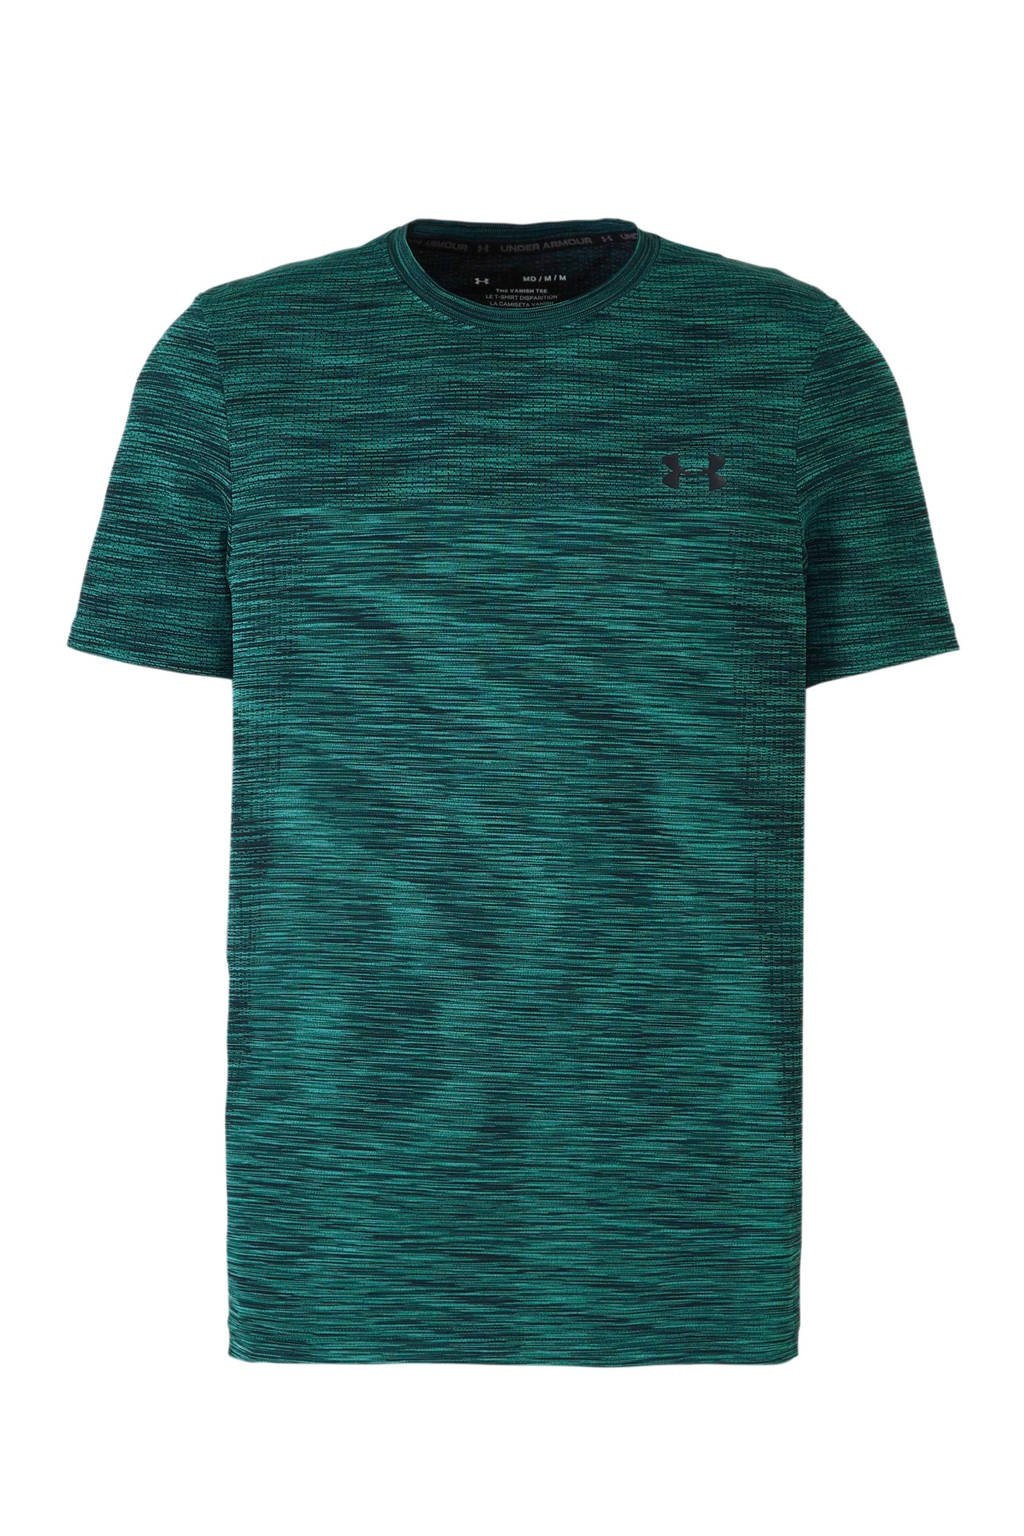 Under Armour   sport T-shirt turquoise melee, Turquoise/donkerblauw